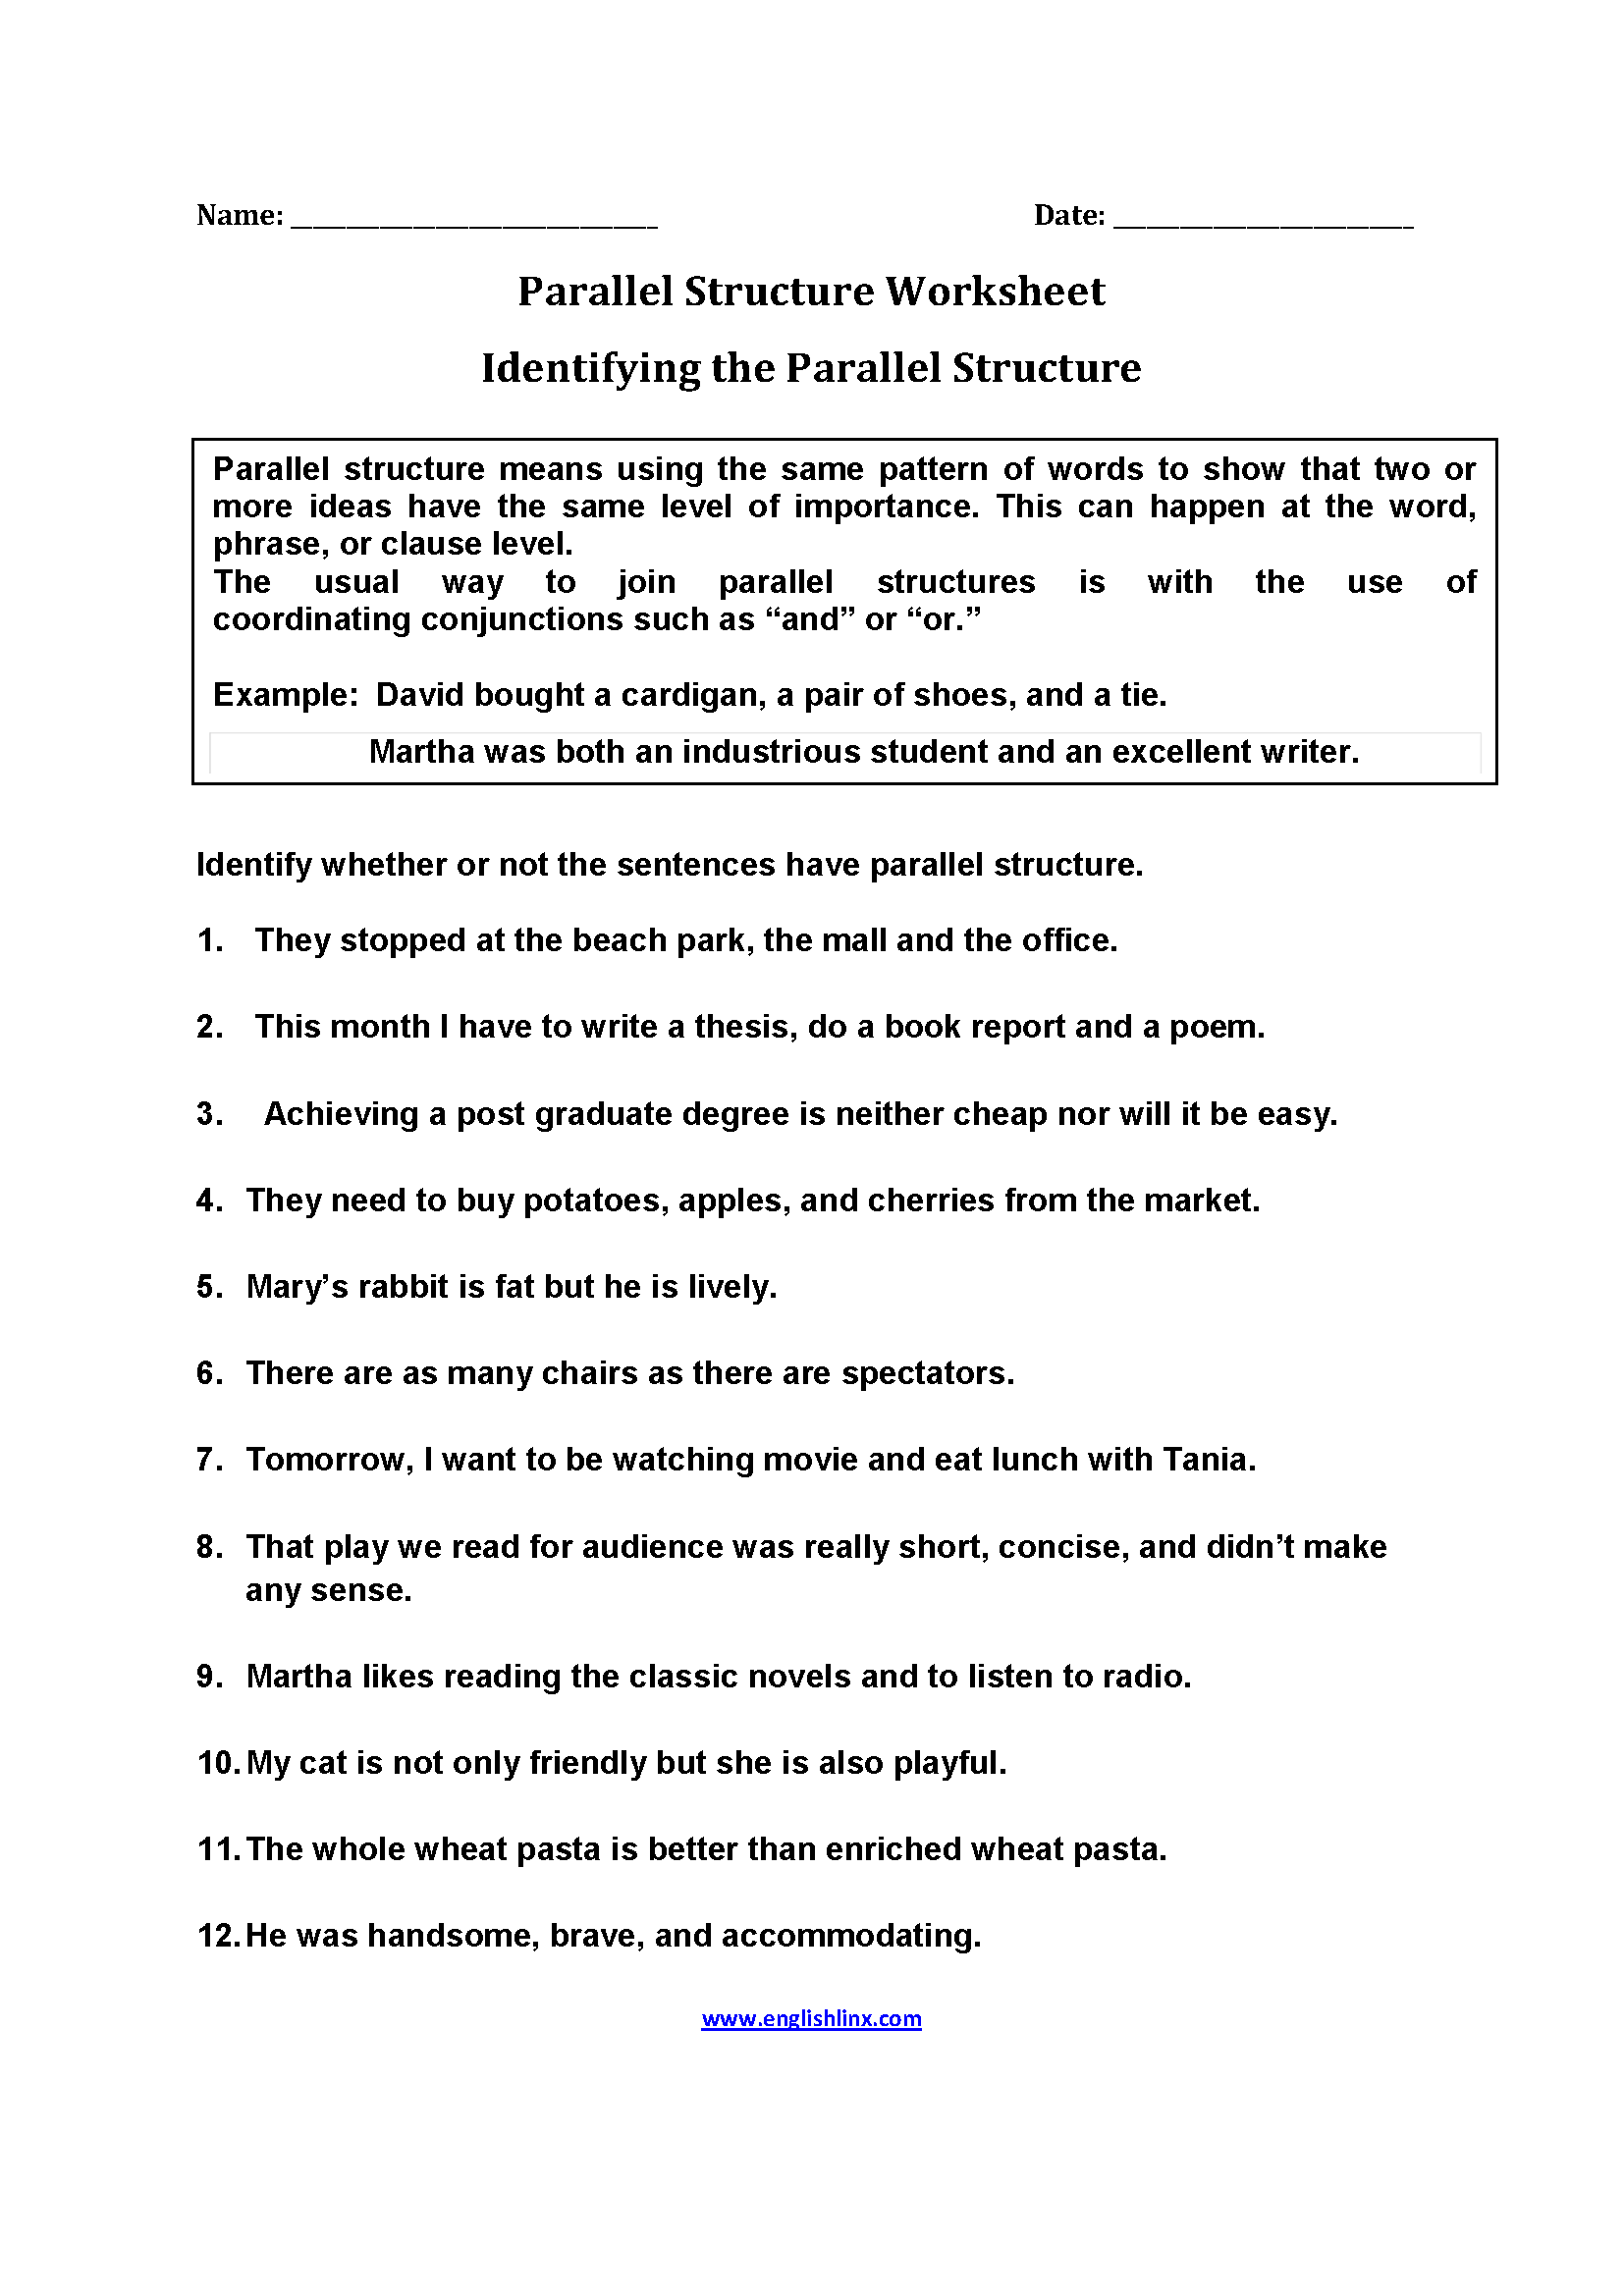 Identifying Parallel Structure Worksheets